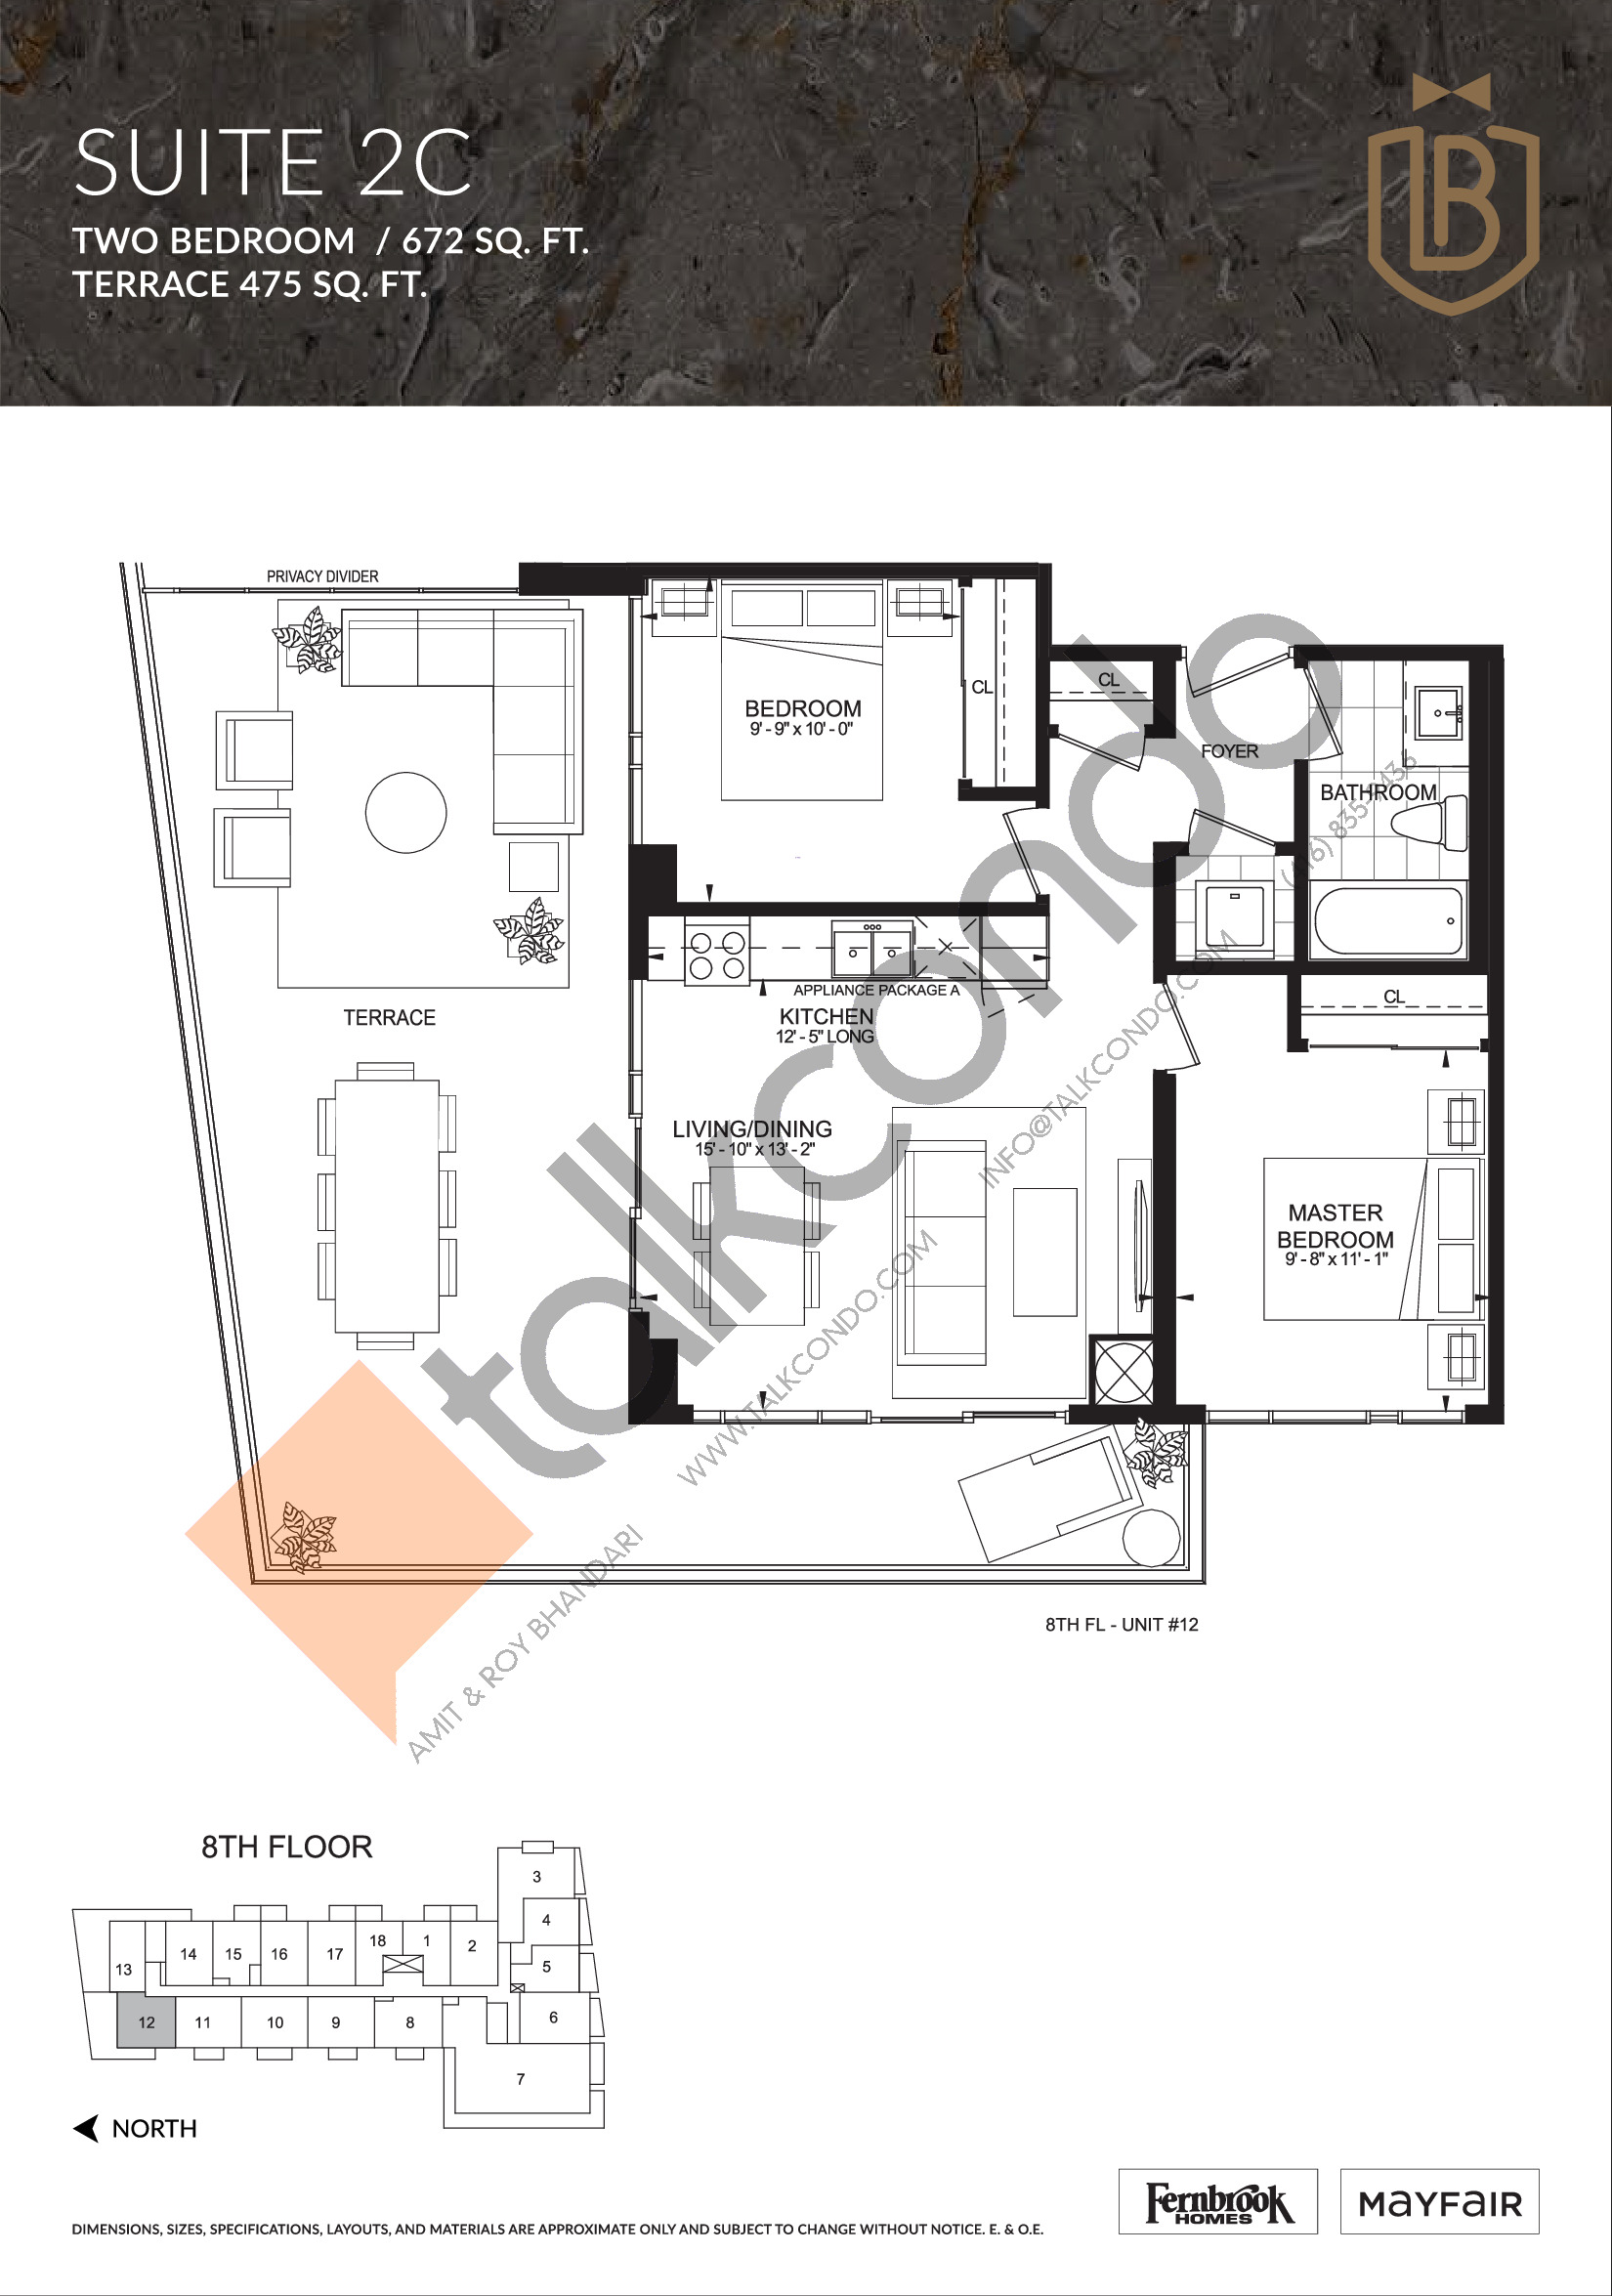 Suite 2C (Terrace) Floor Plan at The Butler Condos - 672 sq.ft